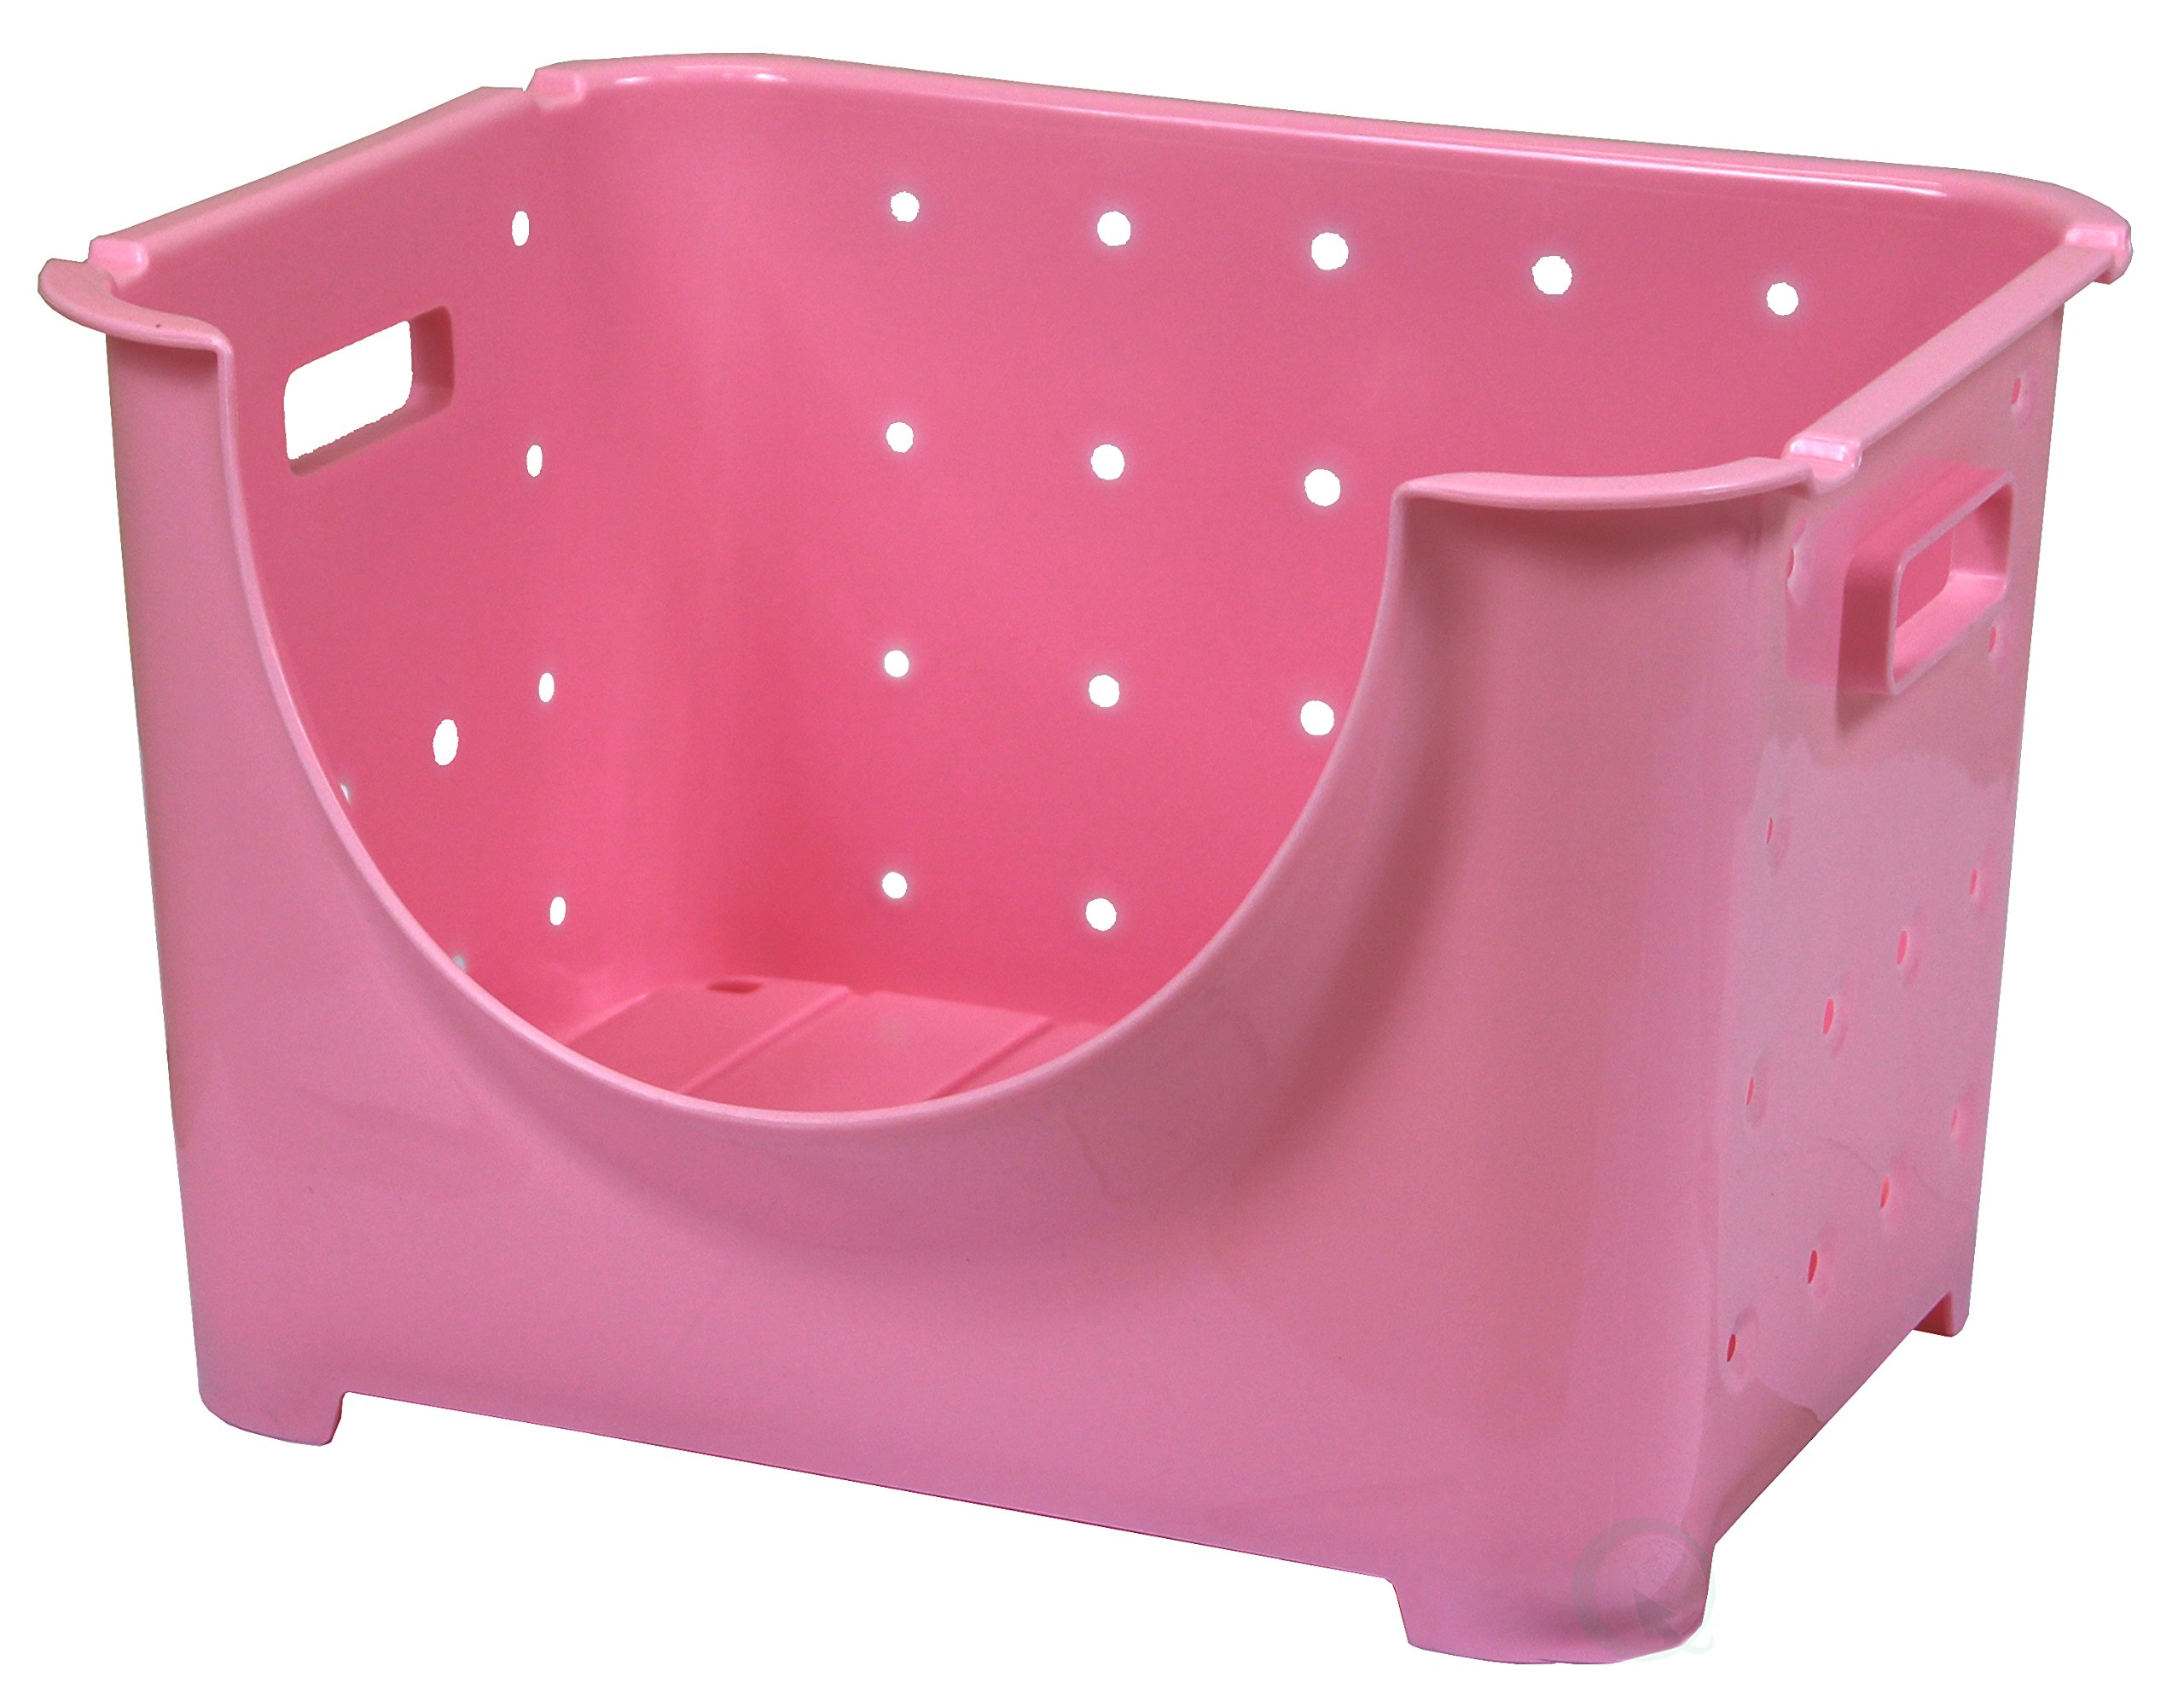 Basicwise Stackable Plastic Storage Container Stacking Bins, Pink